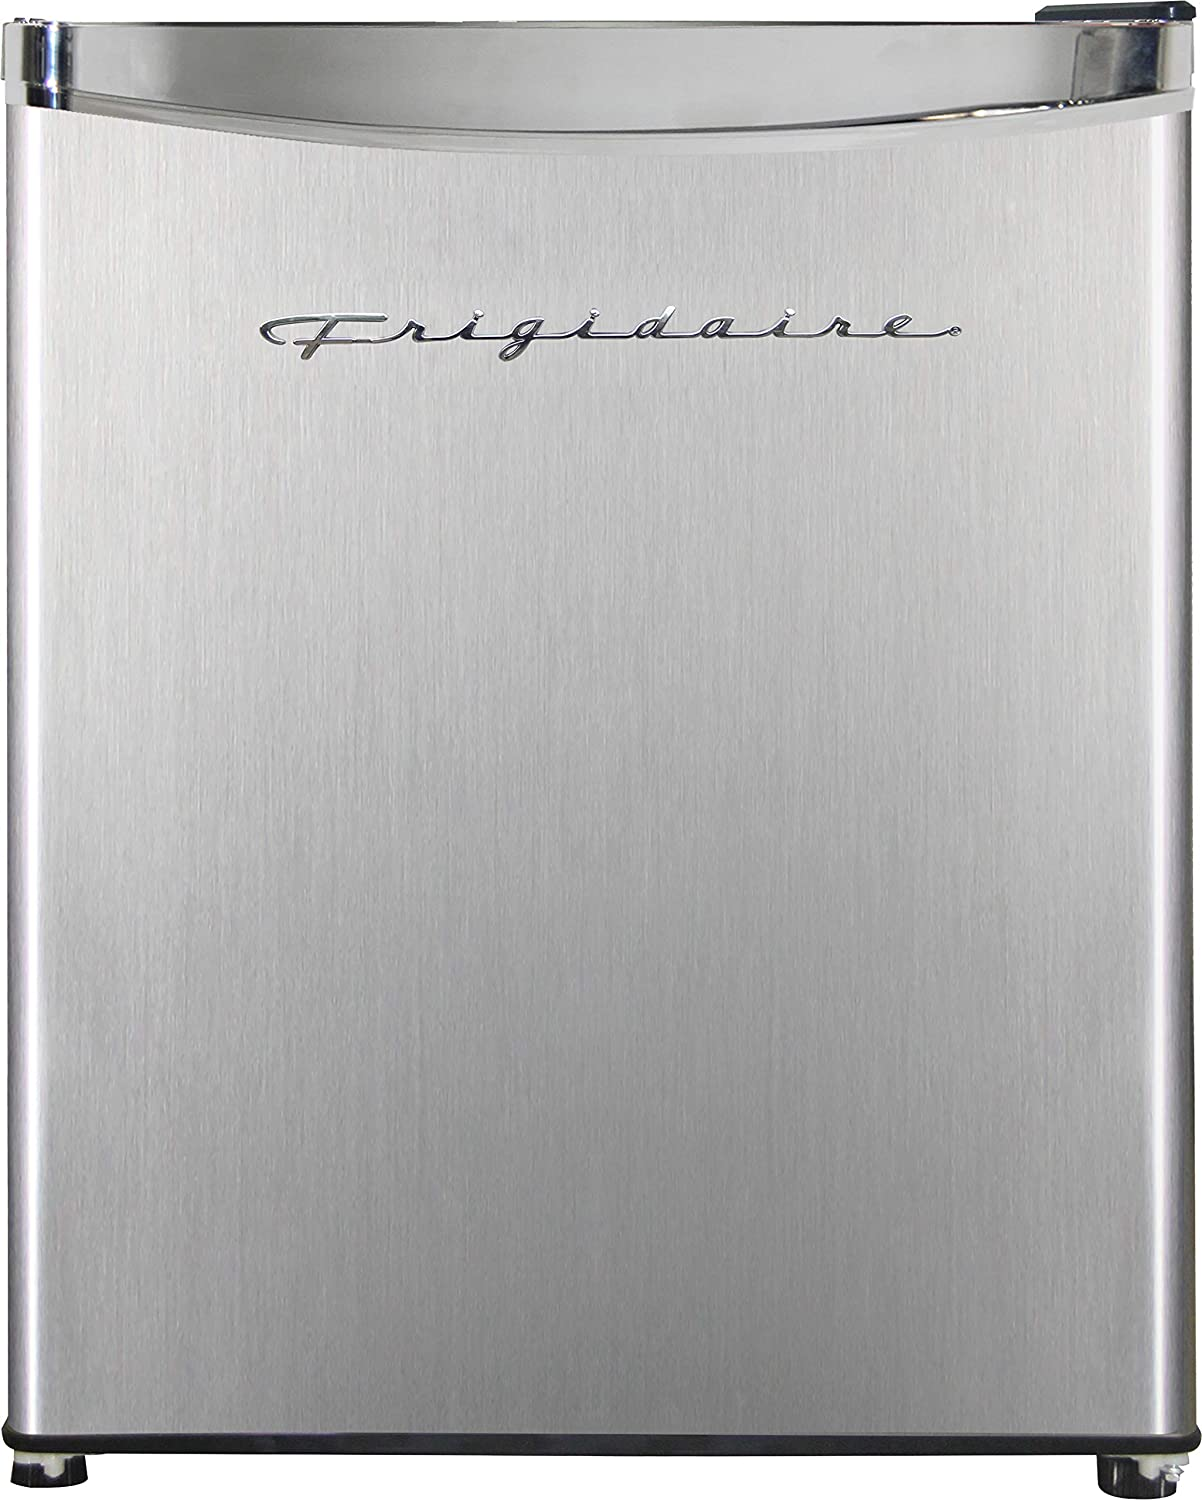 Frigidaire EFR182 1.6 cu ft Stainless Steel Mini Fridge. Perfect for Home or The Office. Platinum Series